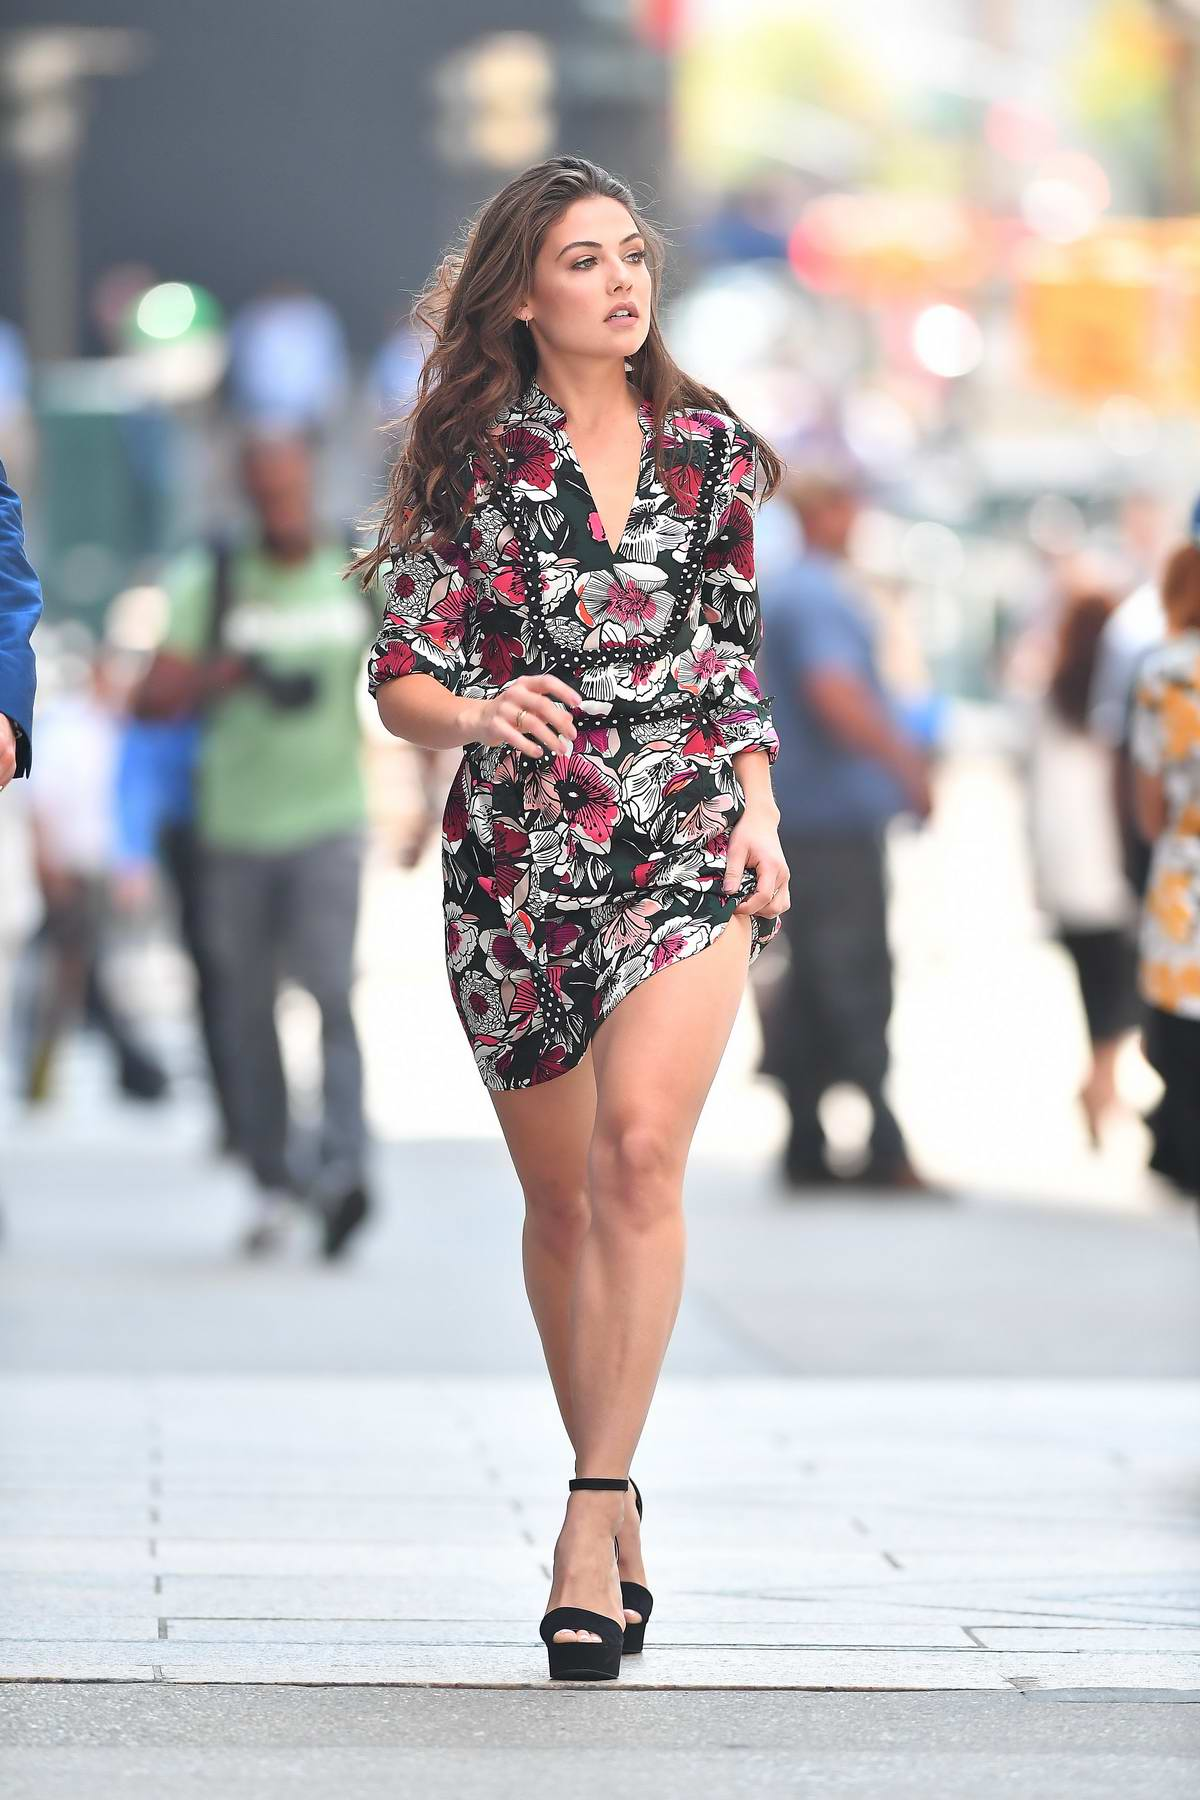 Danielle Campbell wearing a floral dress while out and about in New York City